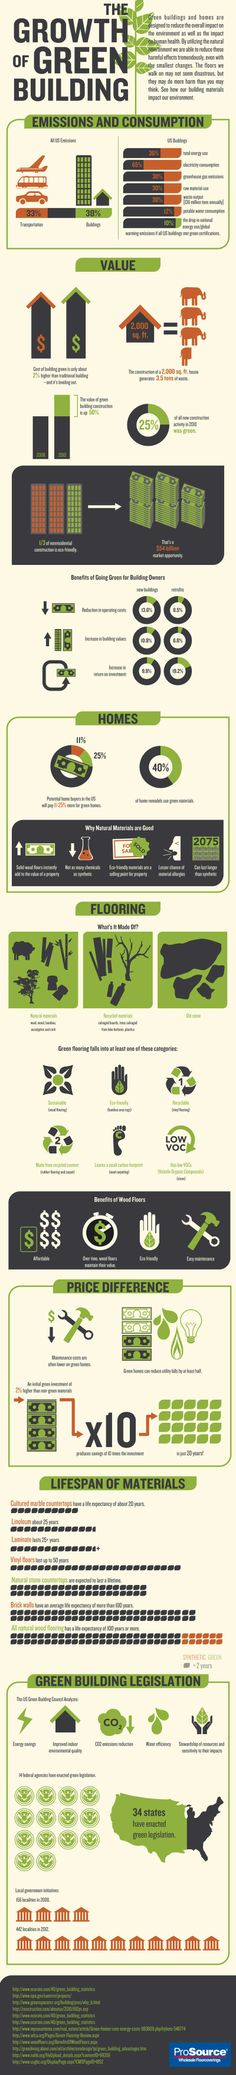 Growth of Green Building InfoGraphic . learn about Benefits of Wood Floors!